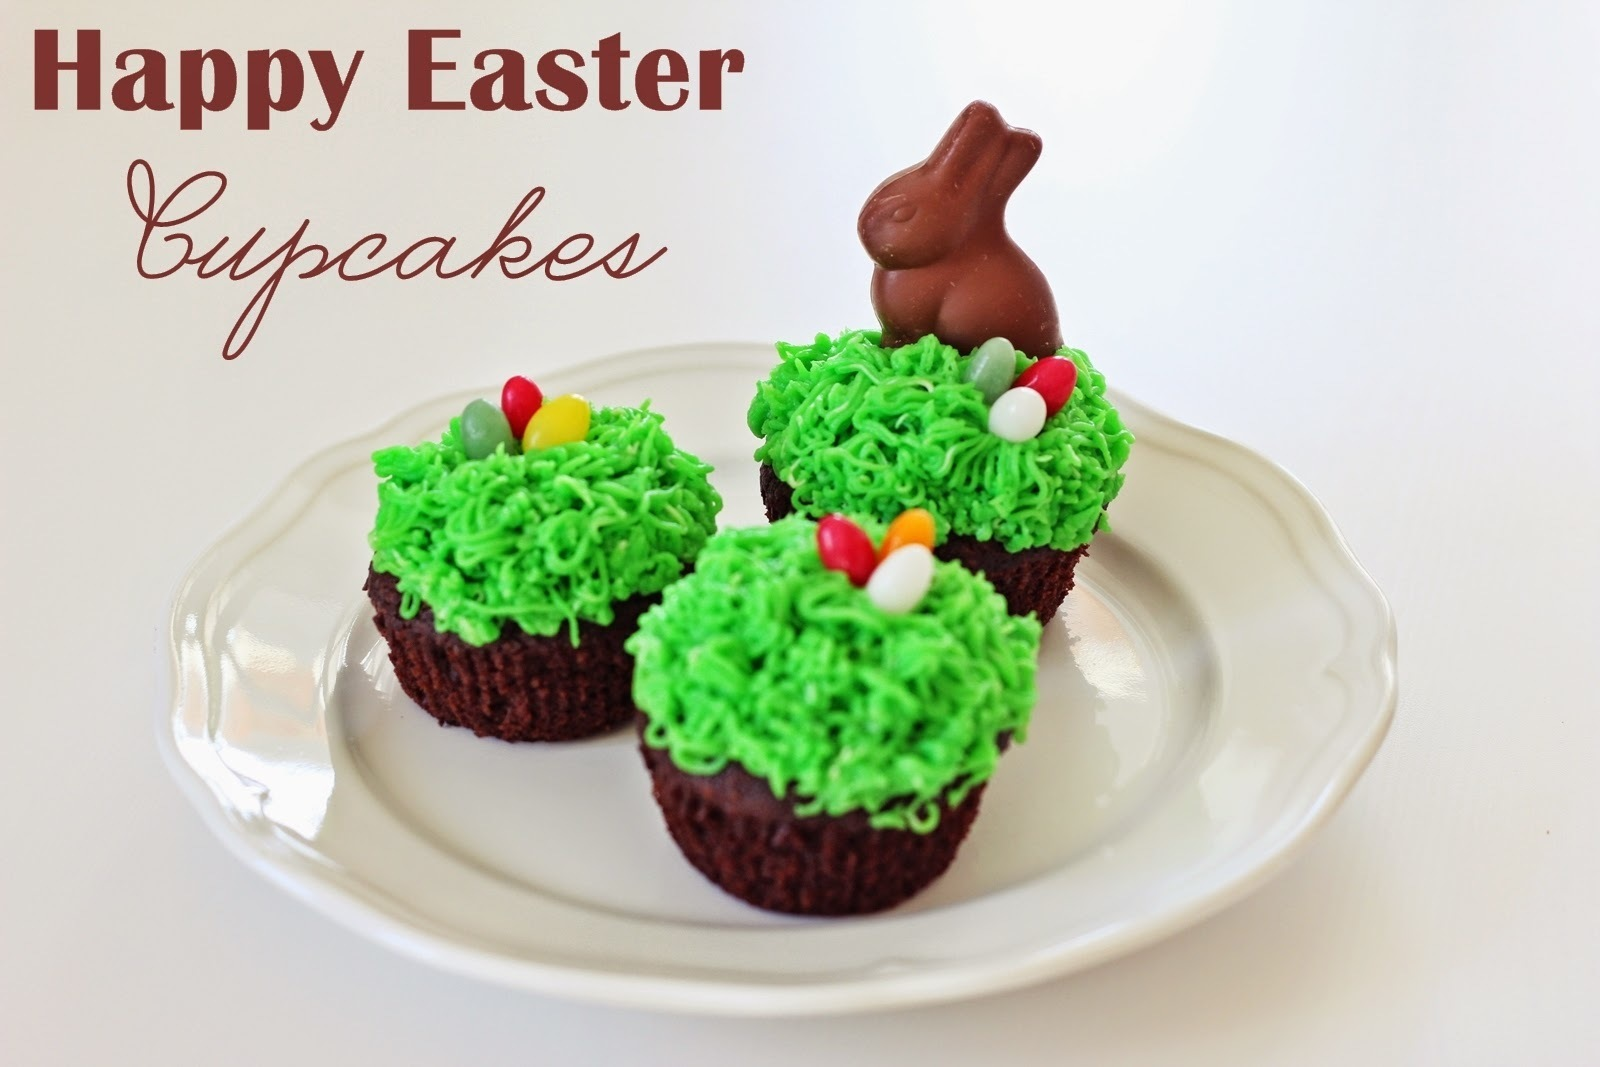 Happy Easter Cupcakes